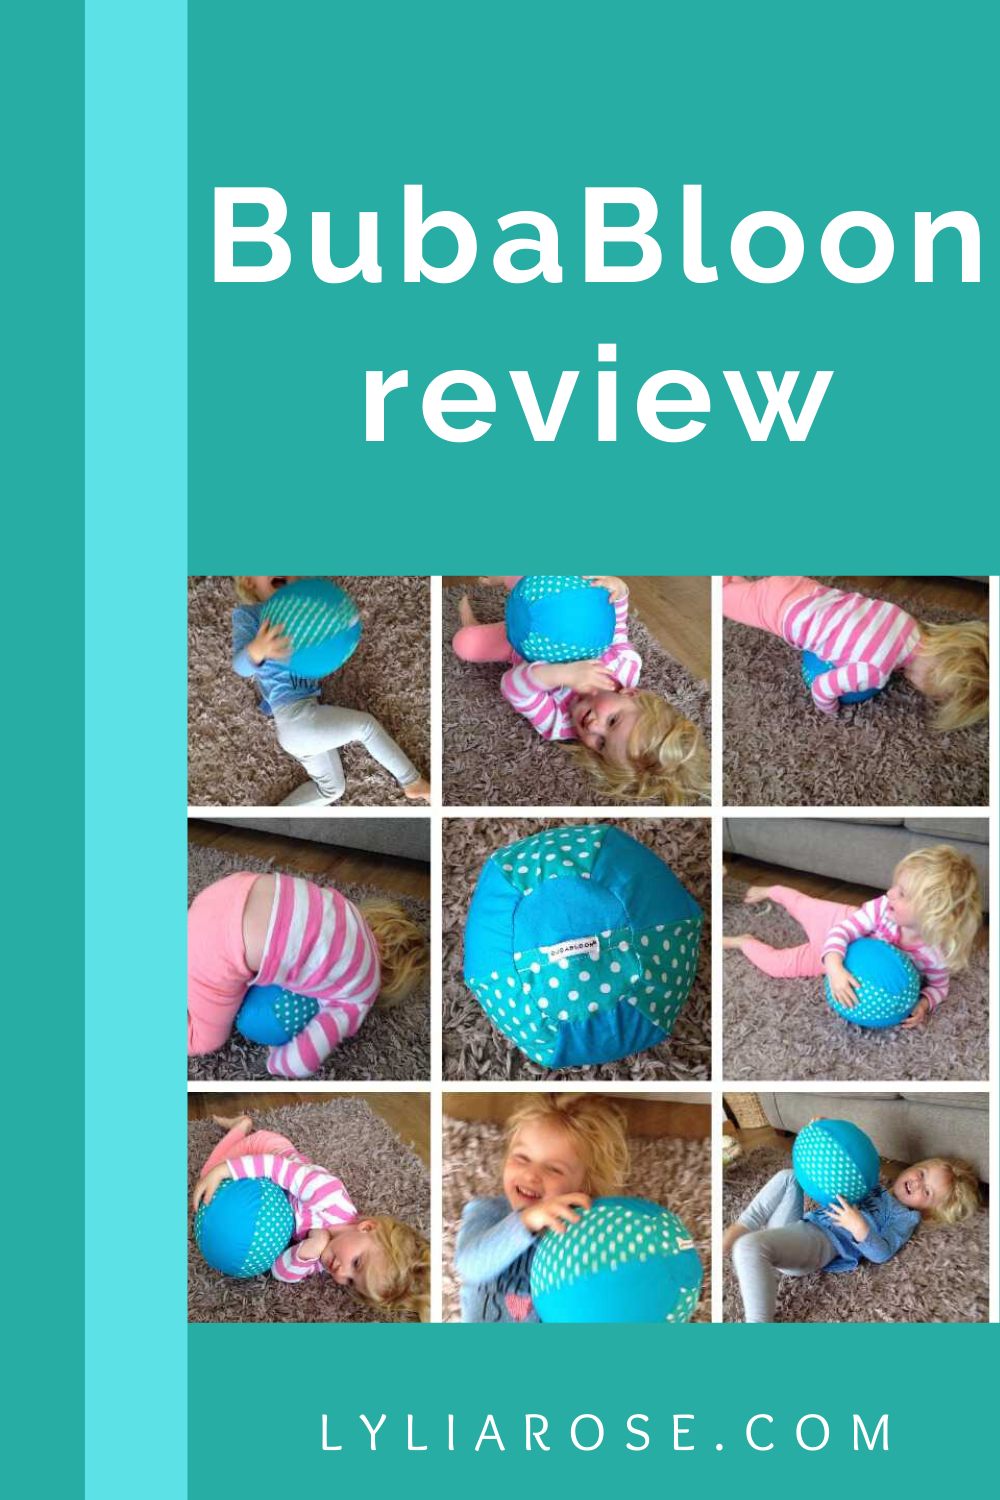 BubaBloon review - fabric balloon cover for safety